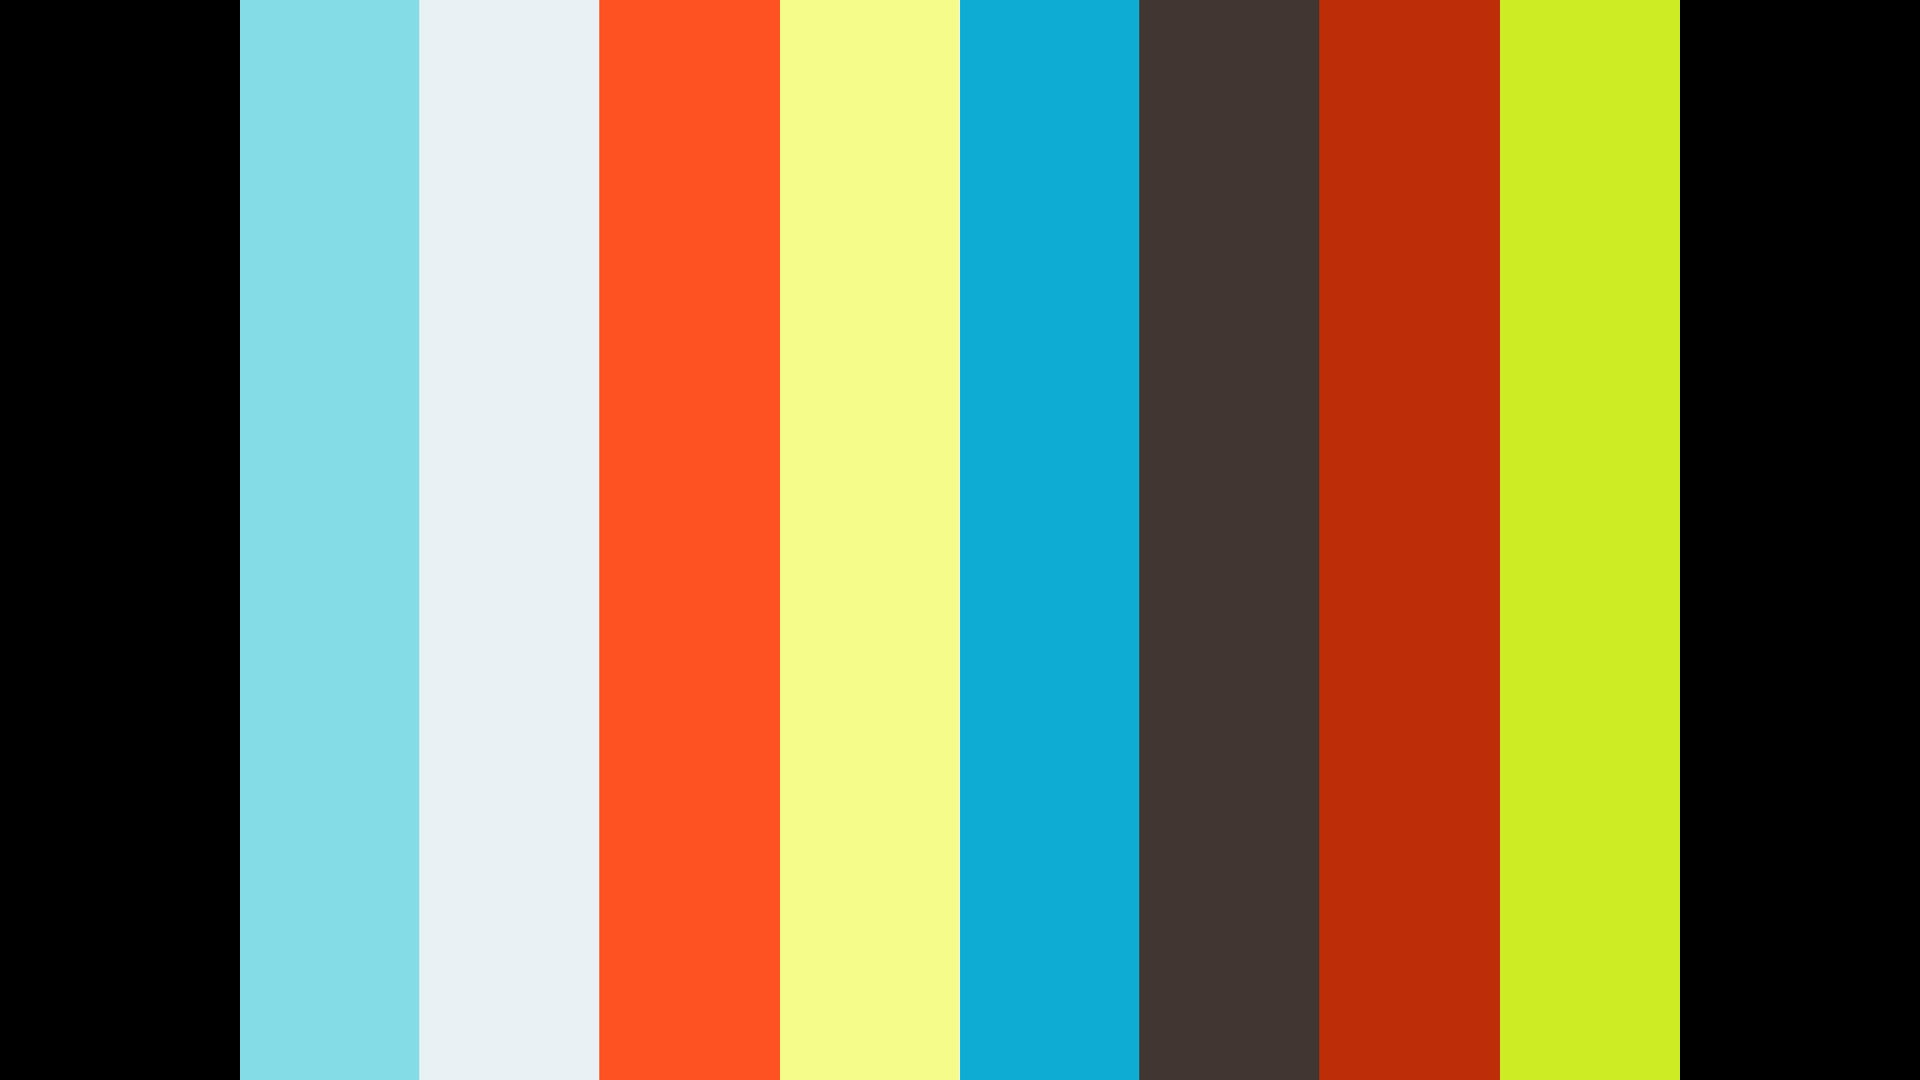 Weaving through the Big Book